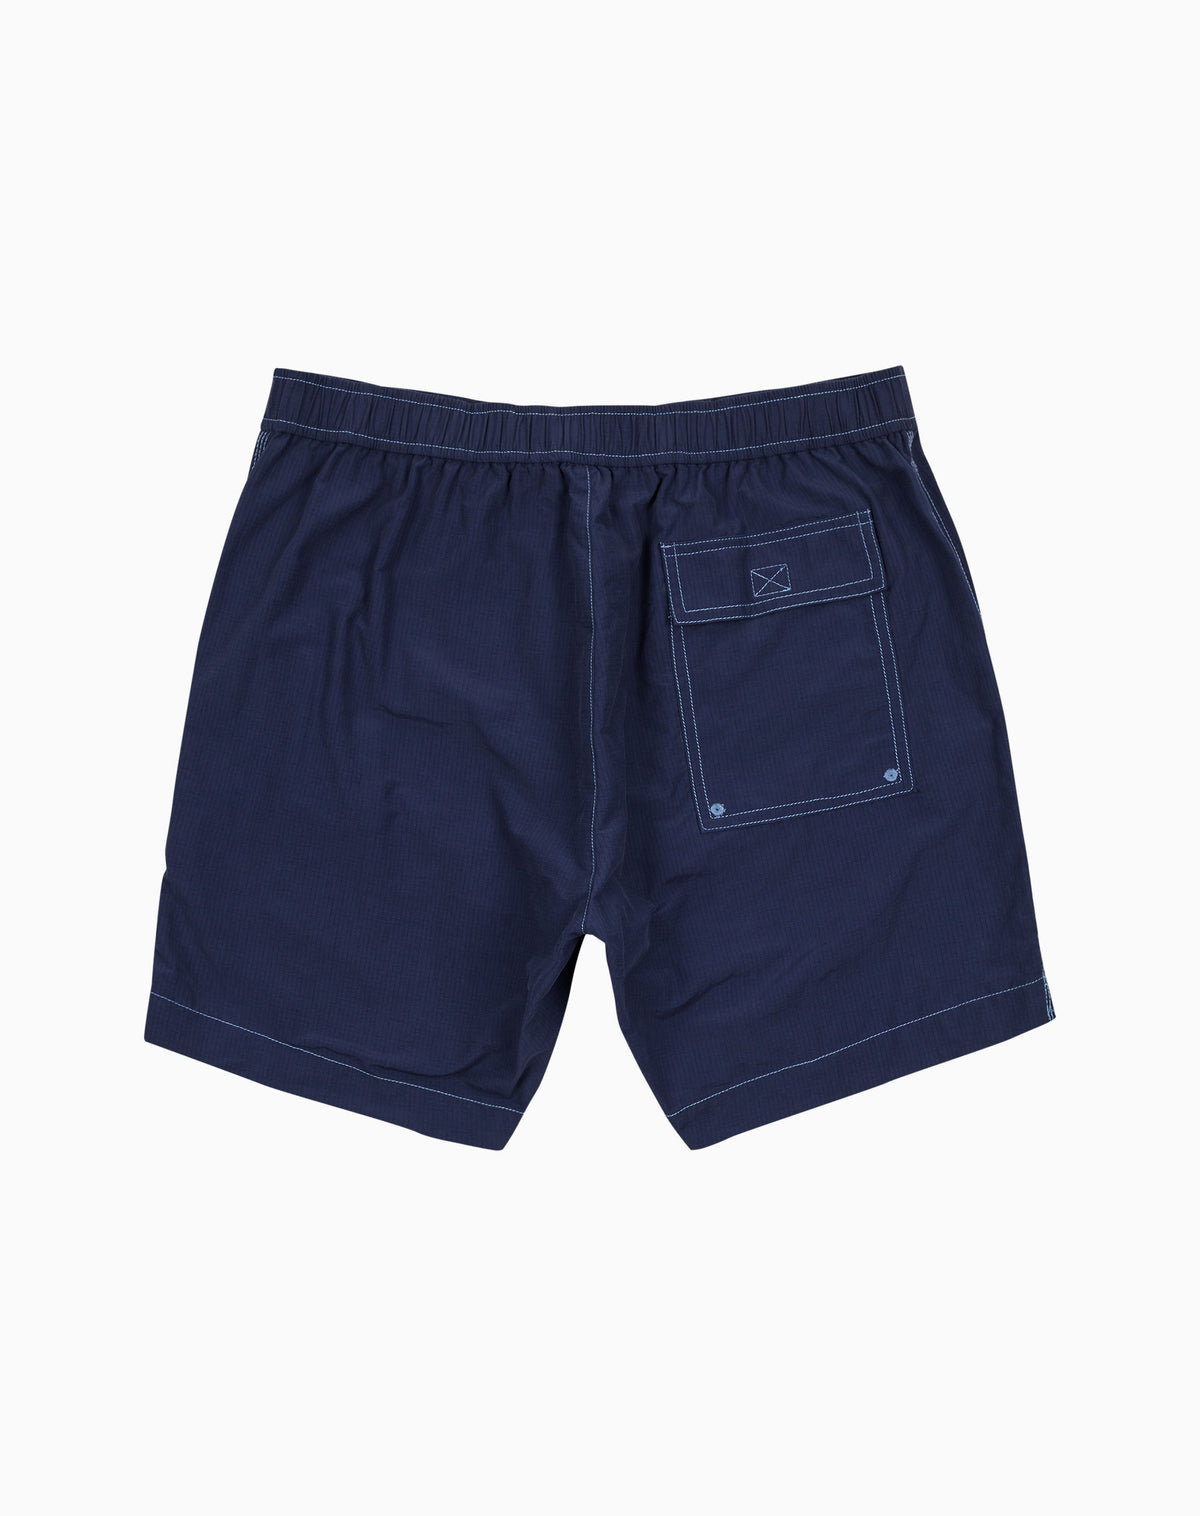 Standard Utility Trunk in Navy